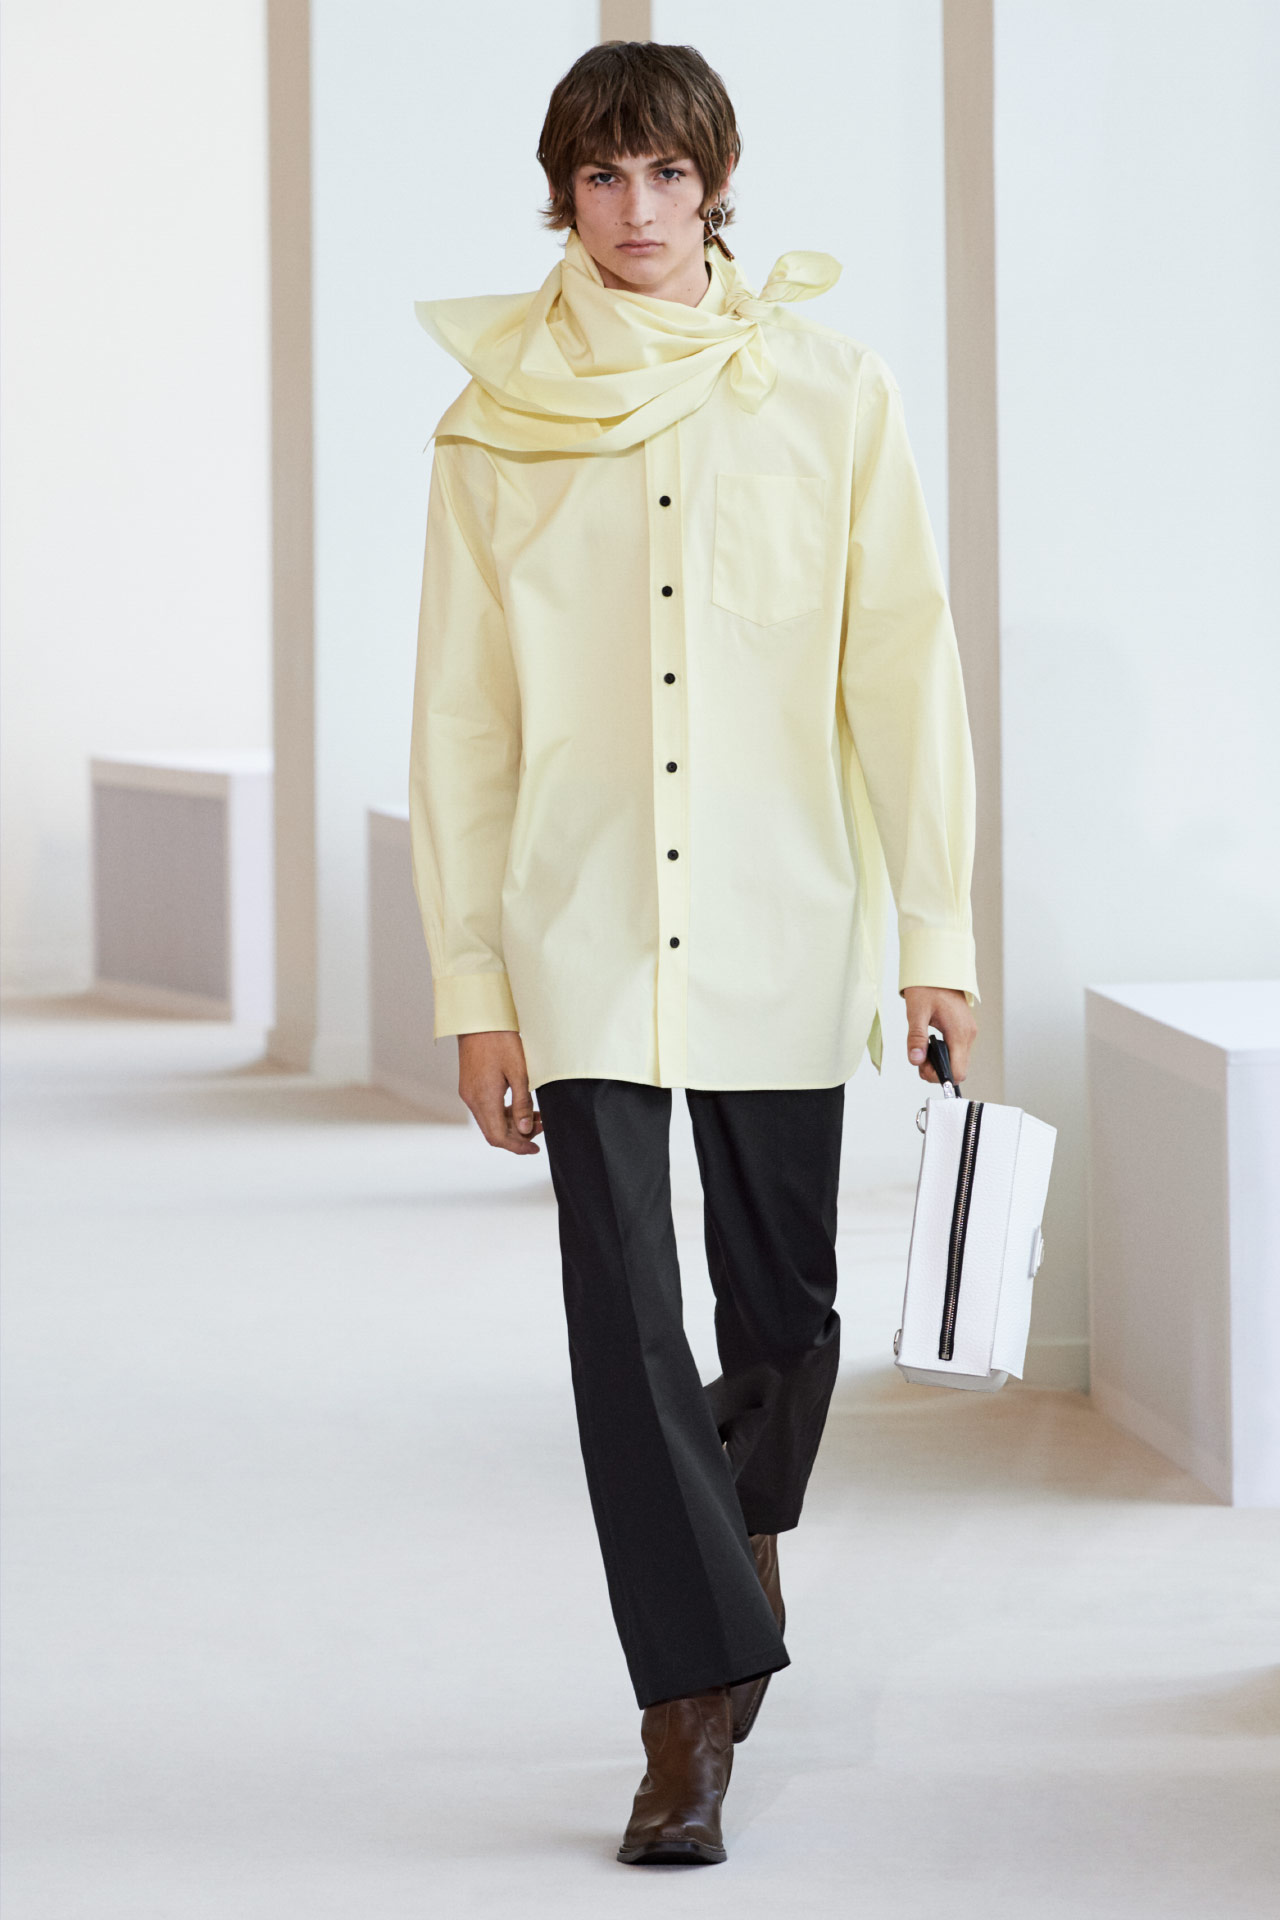 Look Spring/Summer, image 11